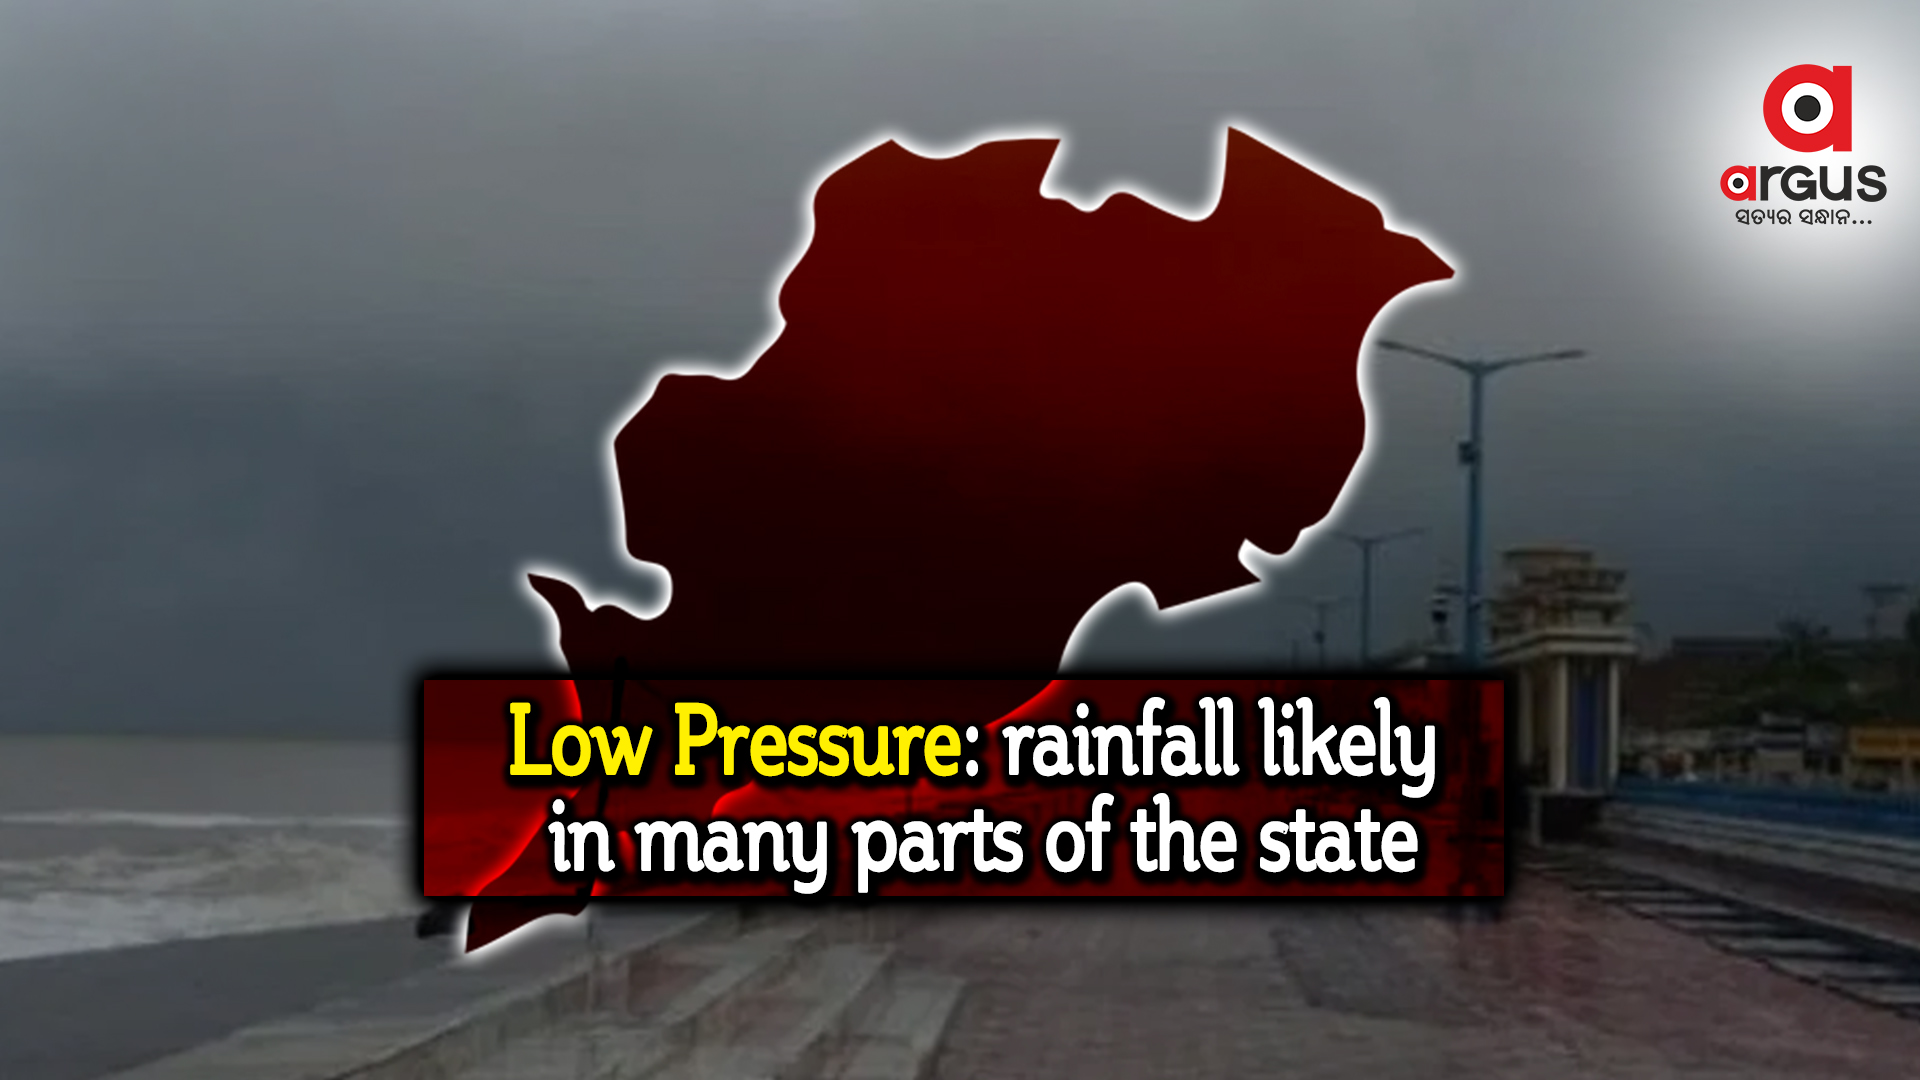 Low Pressure: rainfall likely in many parts of the state